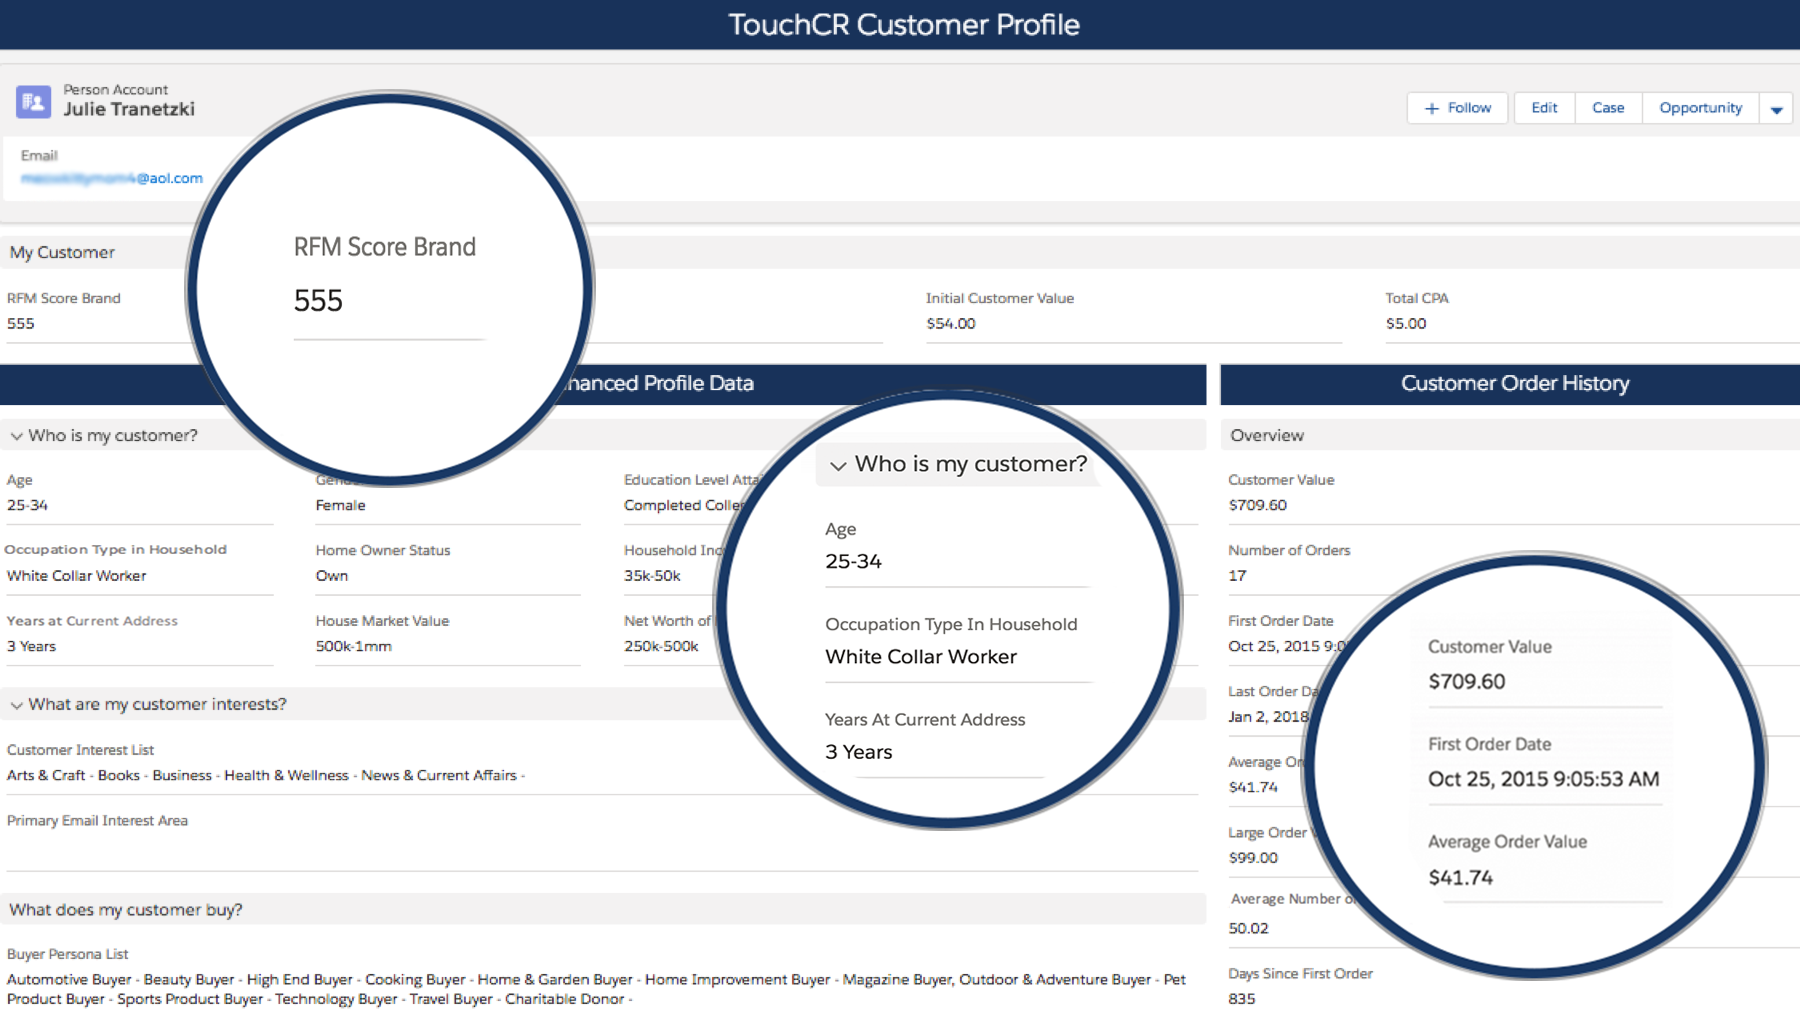 Dynamic Information Added to Profile Based on Buying Behaviour and Transactions Giving a 360 Degree Real-Time Complete Over of Customer